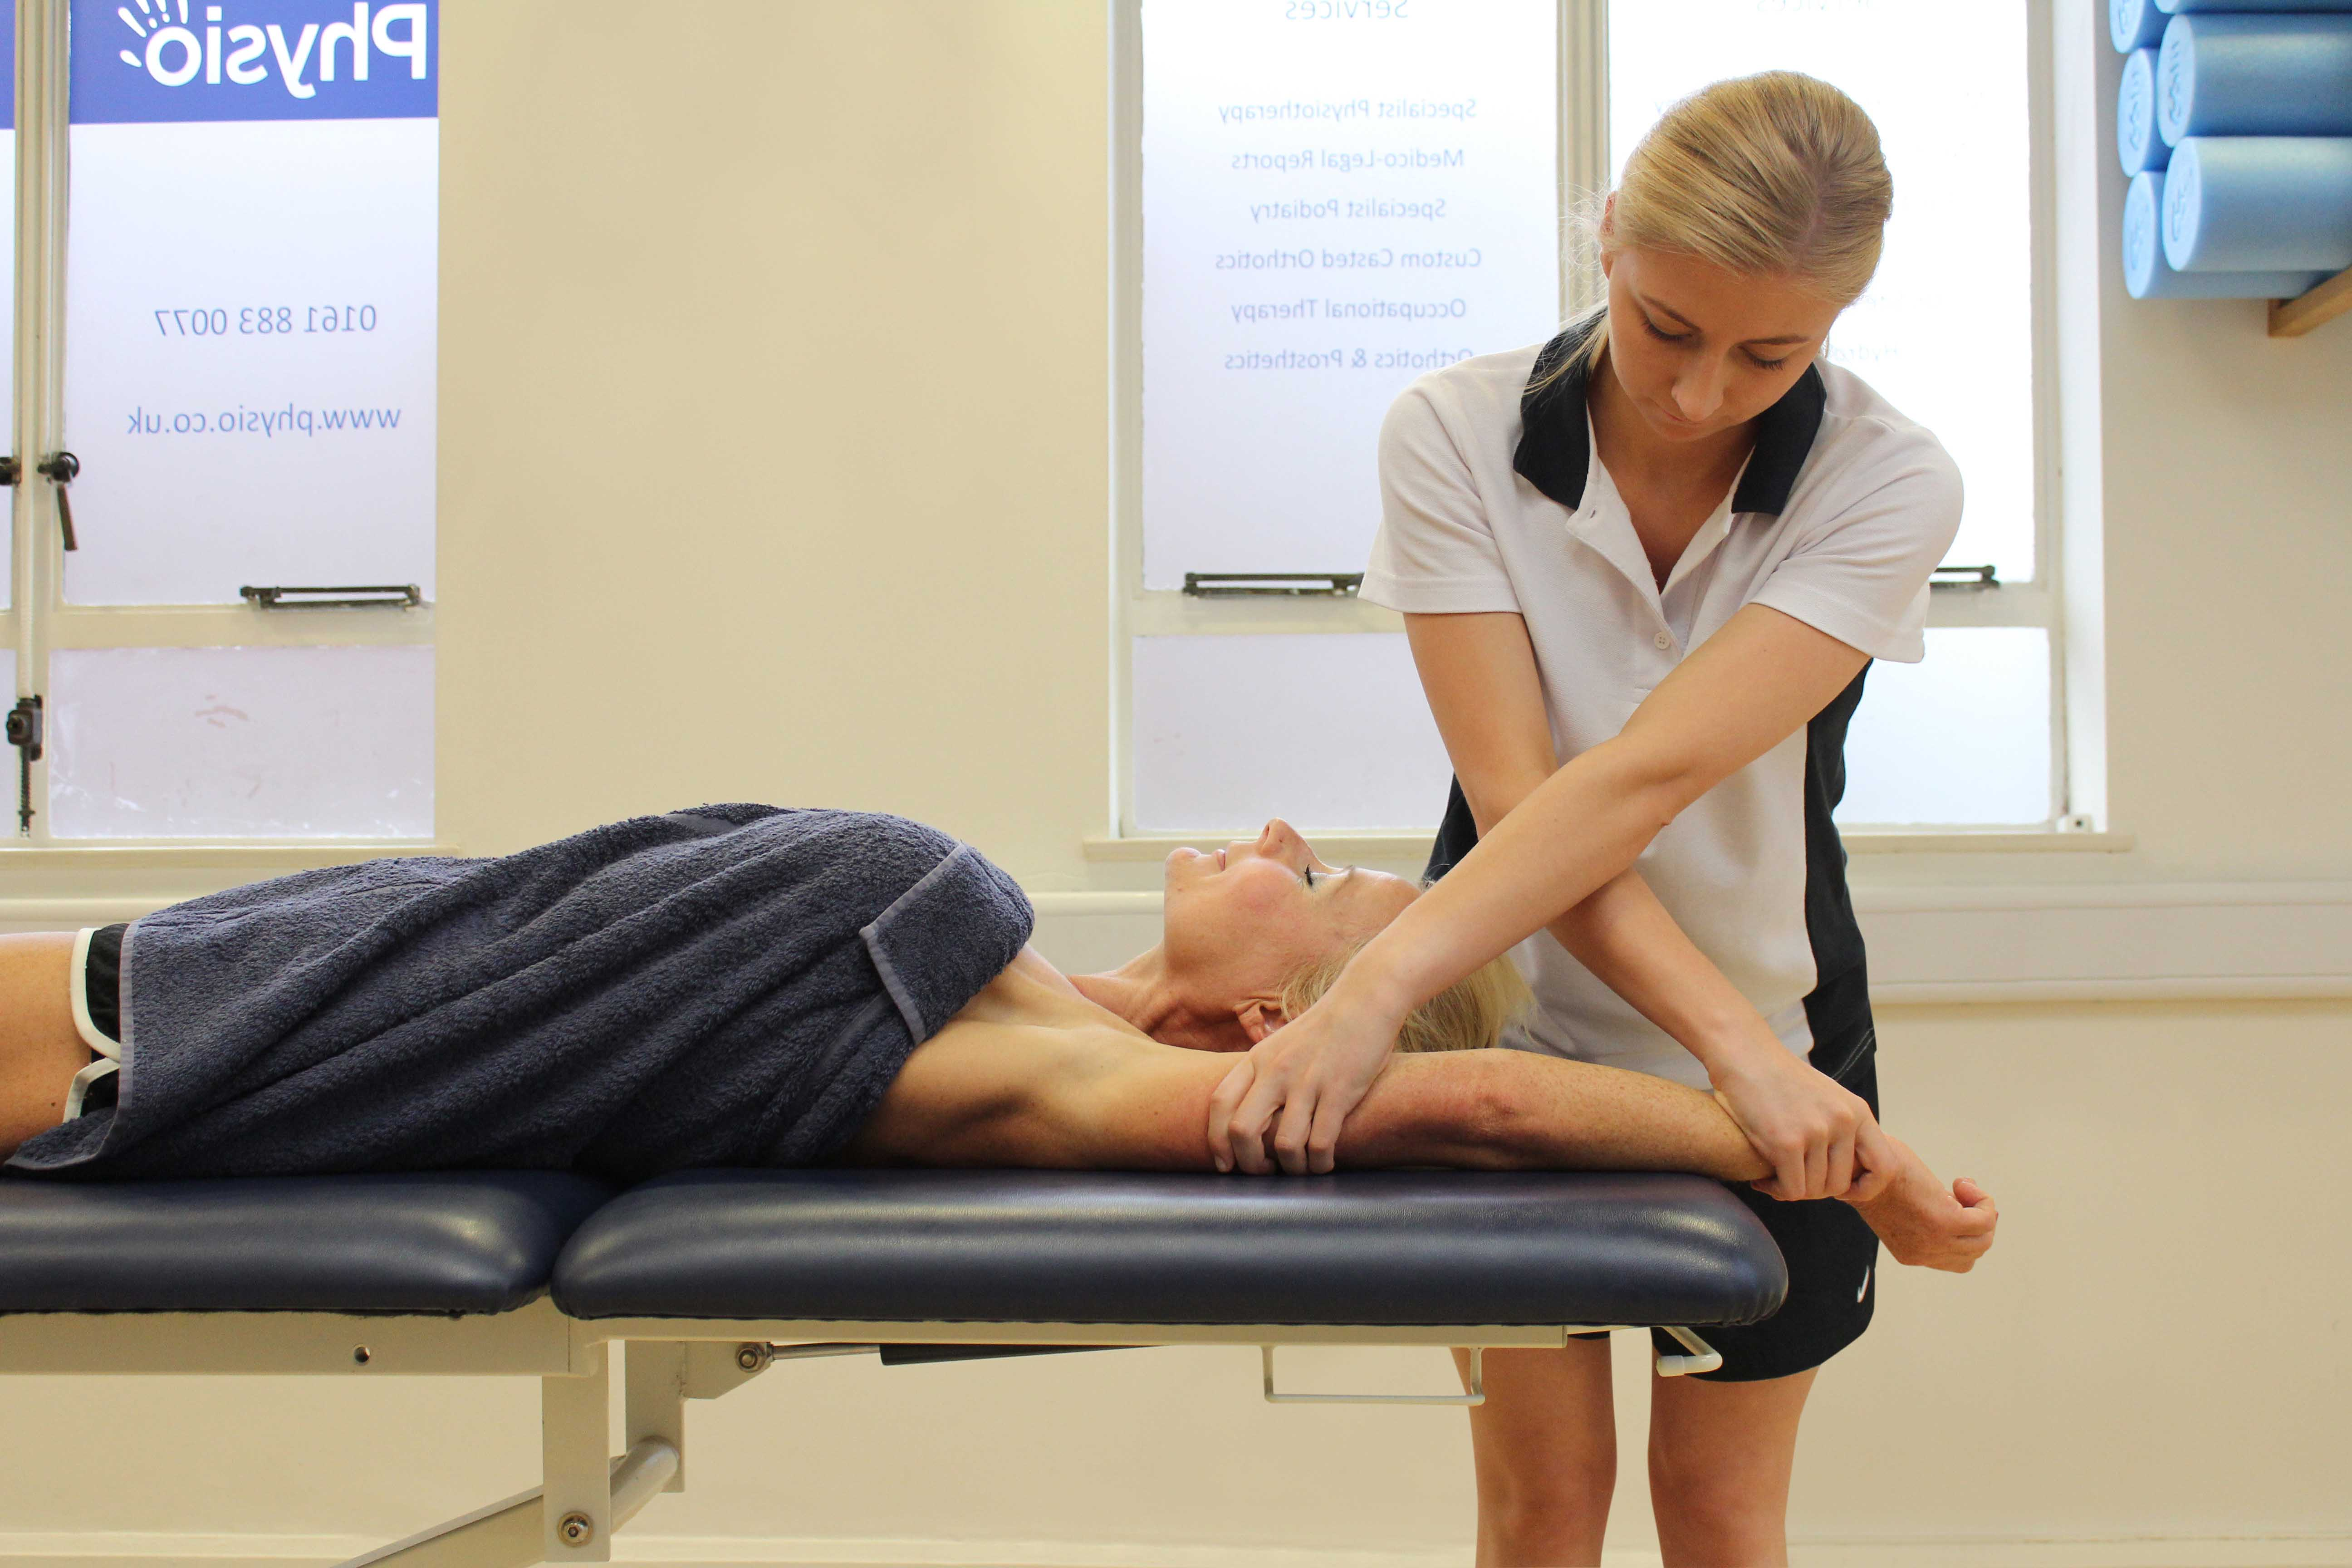 Soft tissue massage and stretch of the muscle and connective tissues around the elbow